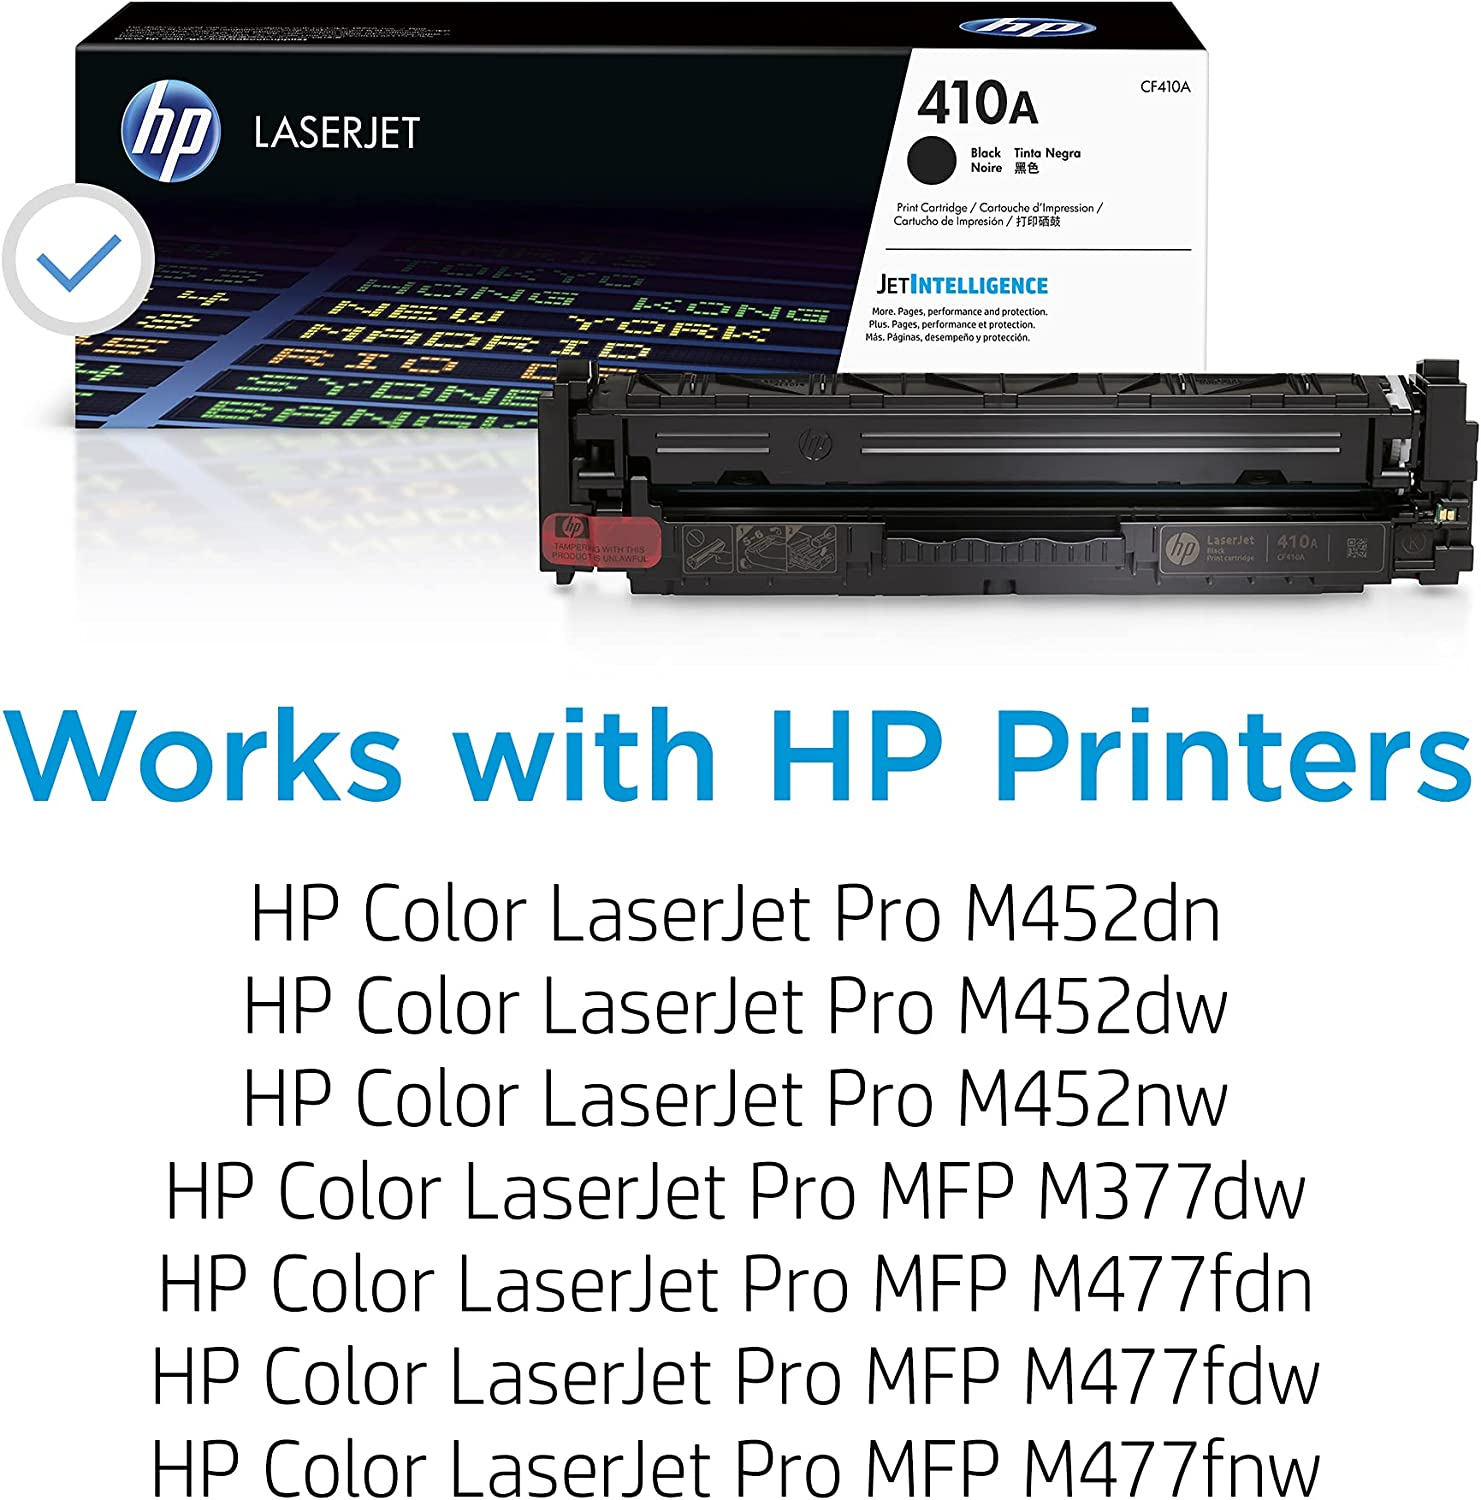 HP 410A | CF410A | Toner-Cartridge | Black | Works with HP Color LaserJet Pro M452 Series, M377dw, MFP 477 Series